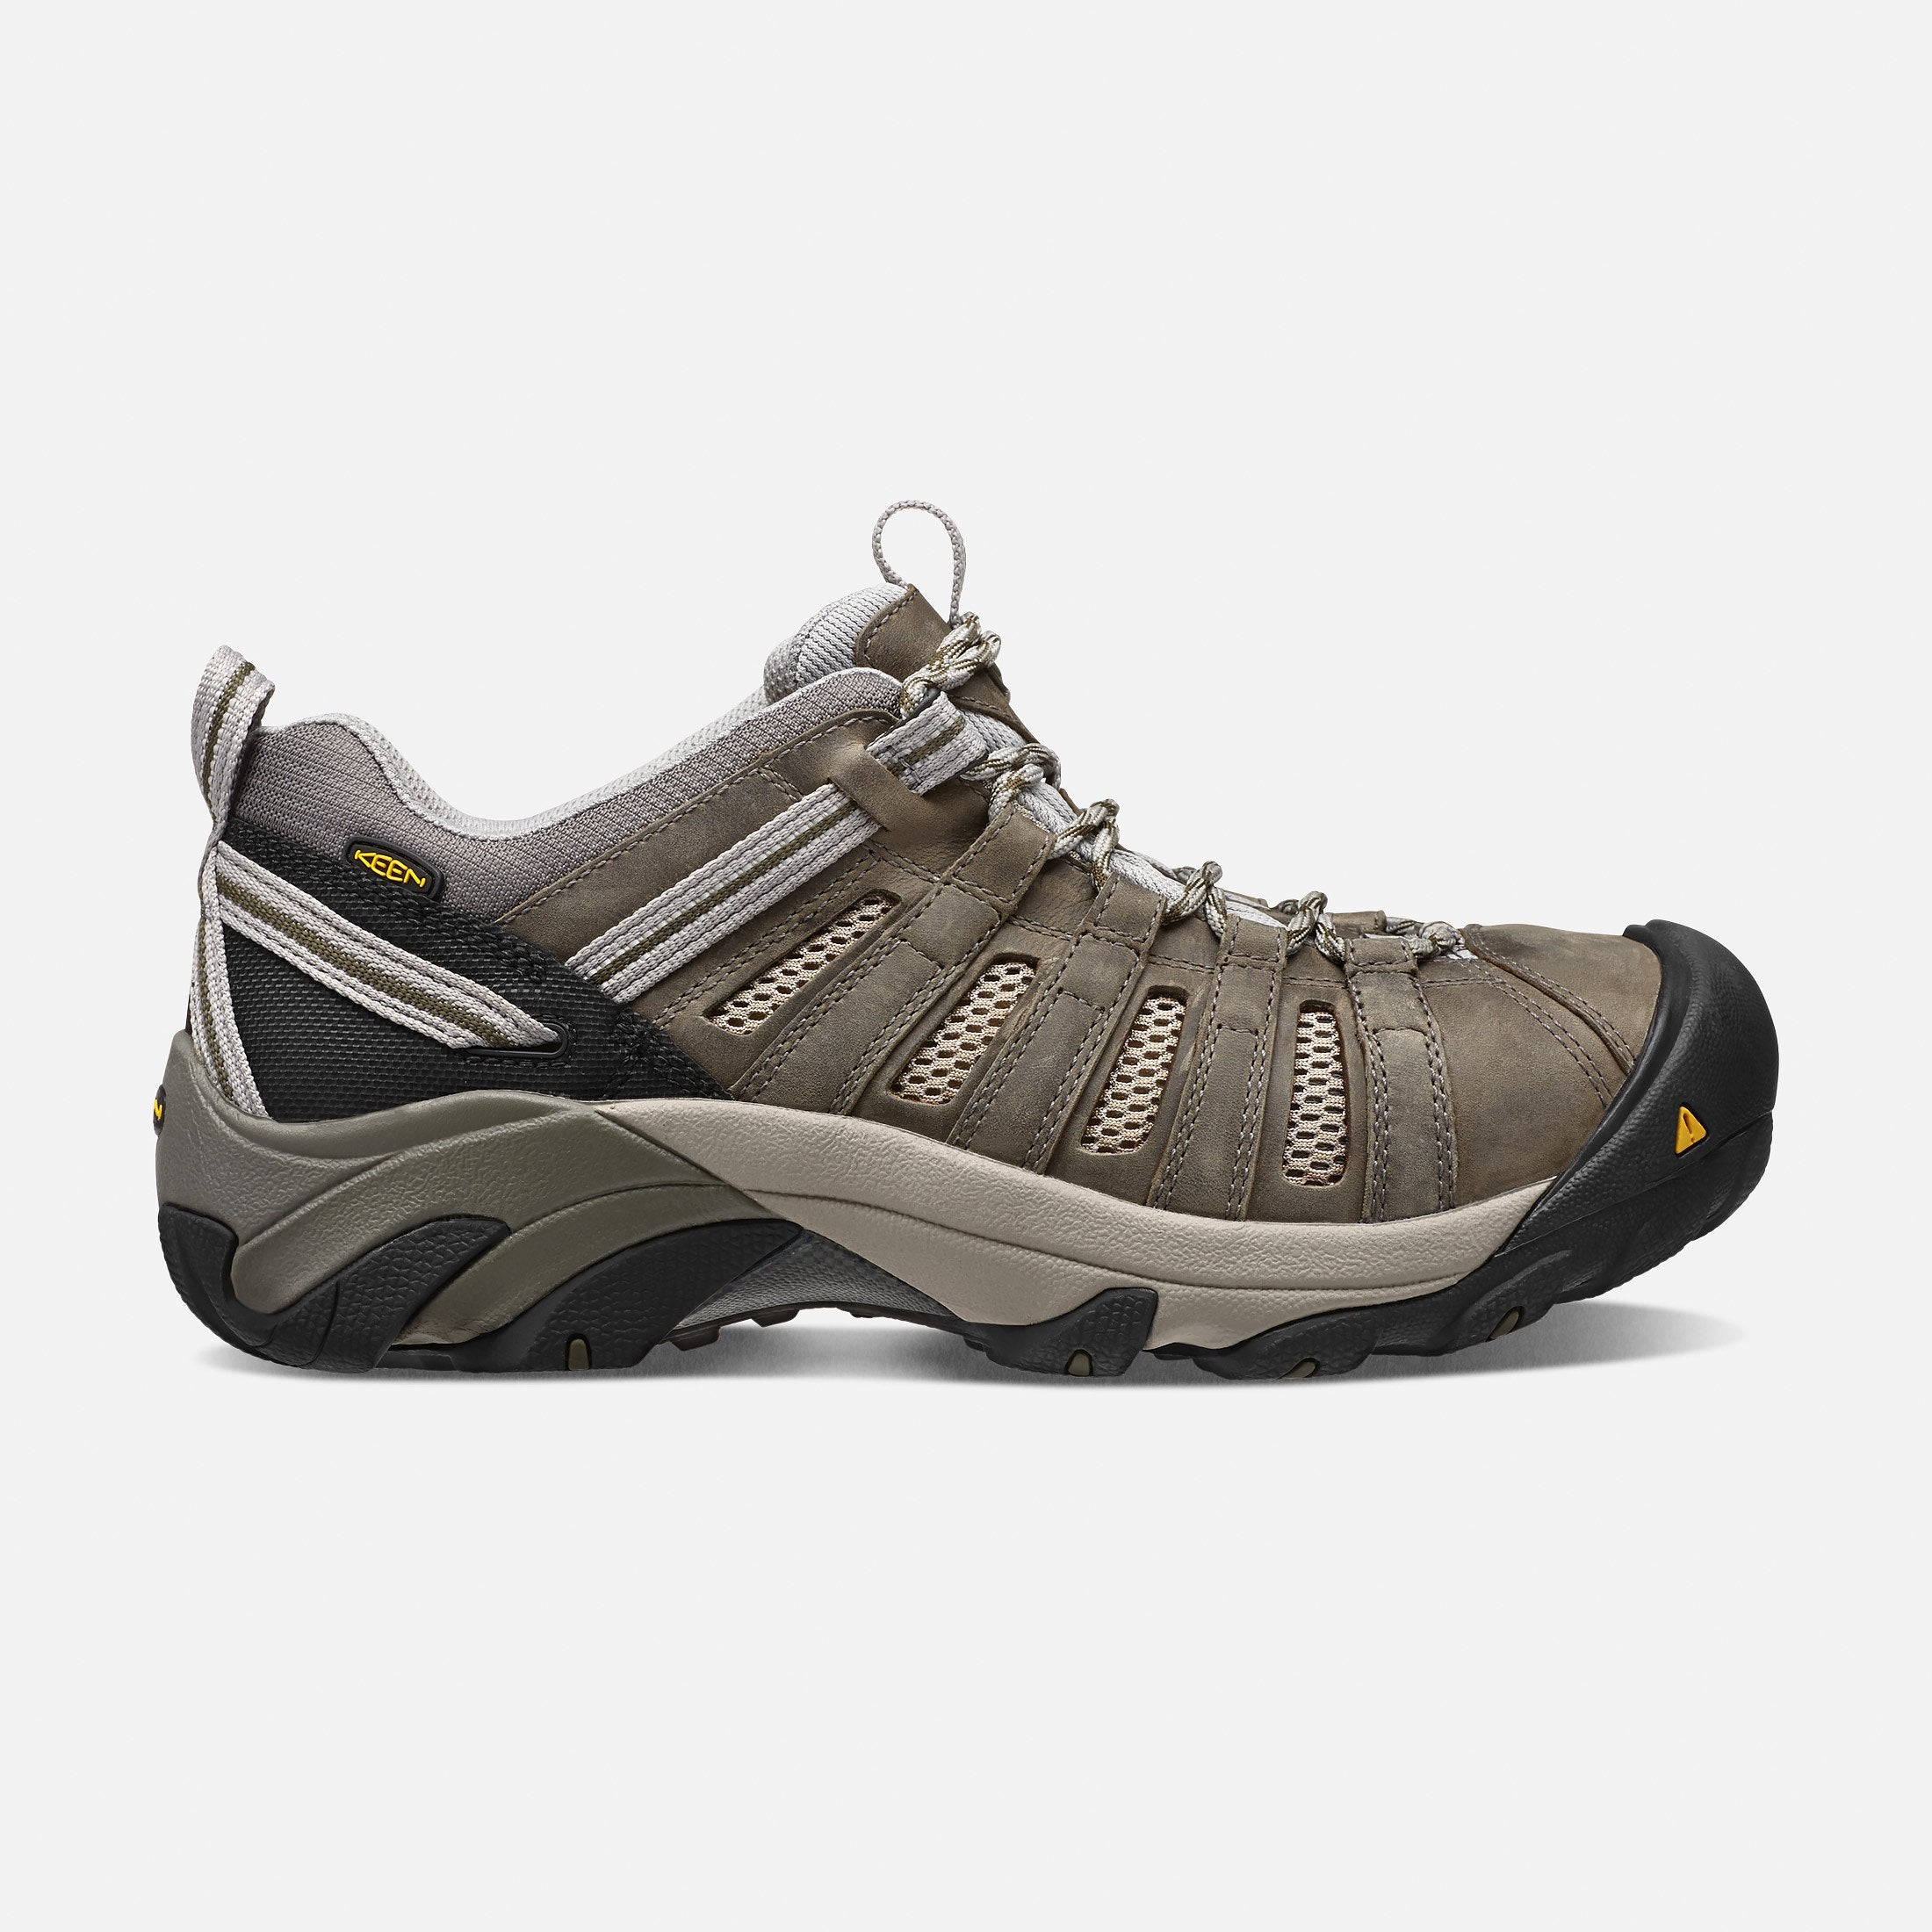 Keen MEN'S FLINT LOW (STEEL TOE) 1012856